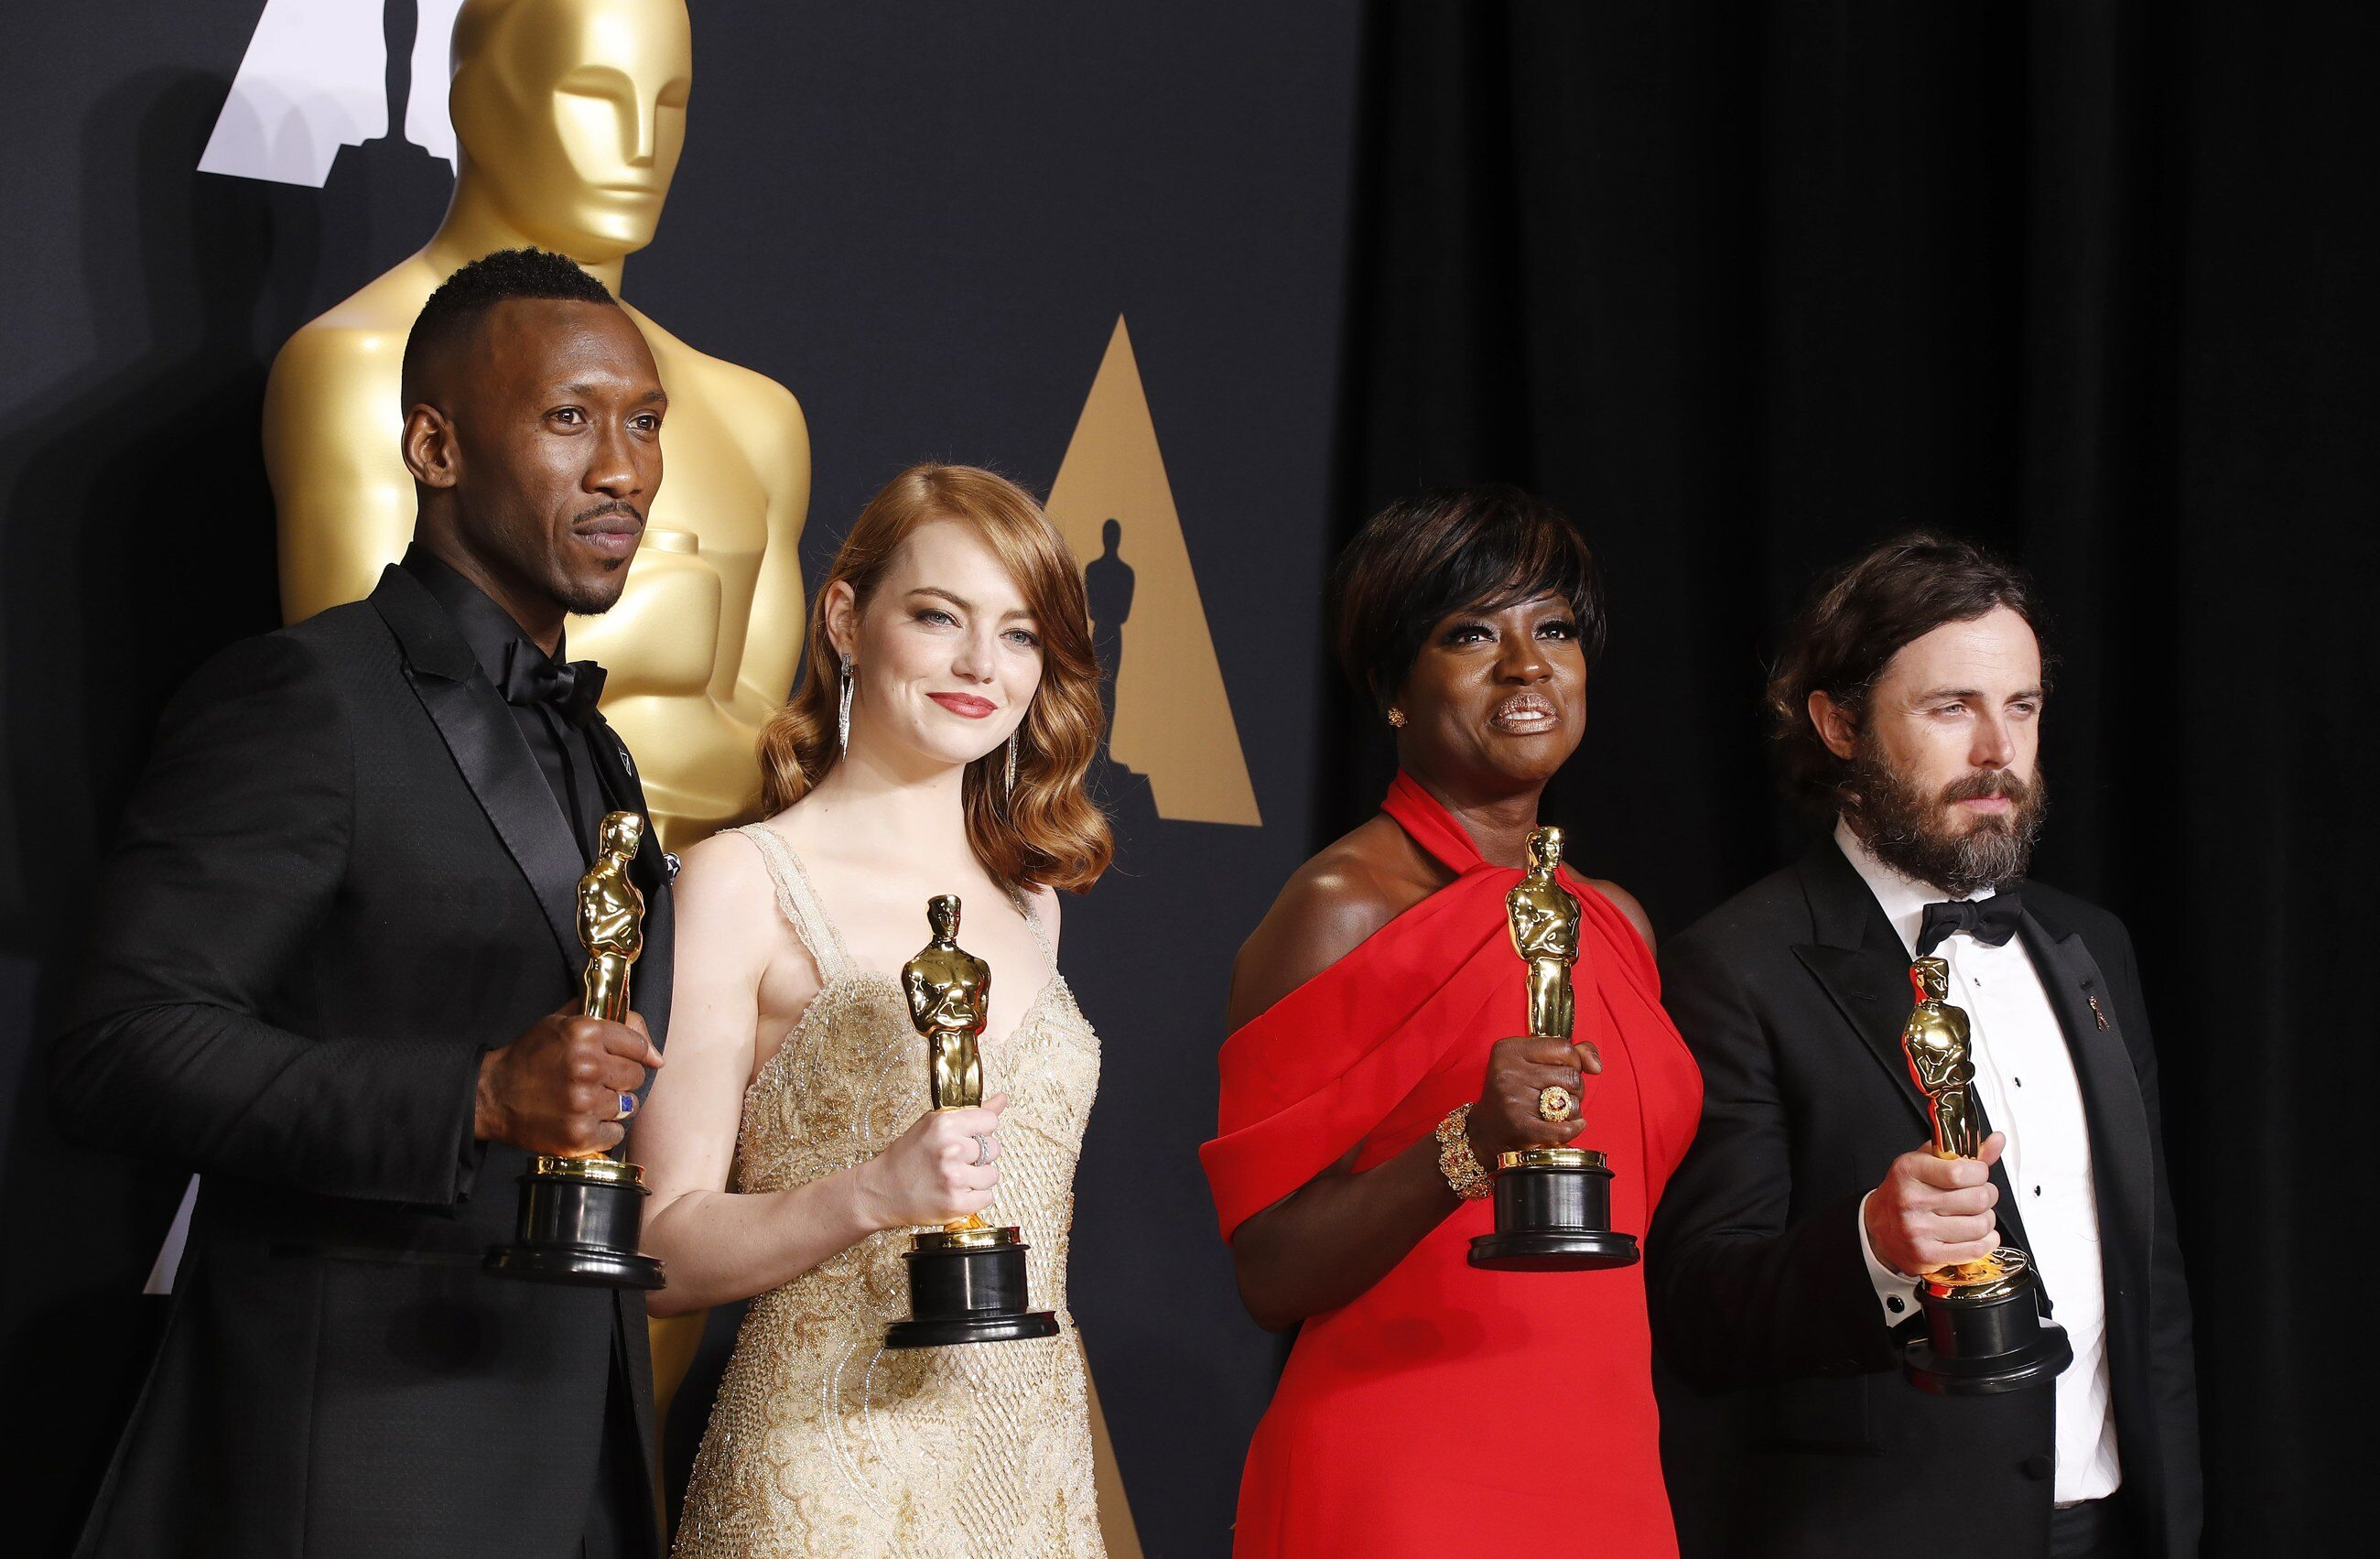 (L-R) Mahershala Ali (Actor in a Supporting Role for Moonlight), Emma Stone (Actress in a Leading Role for La La Land), Viola Davis (Actress in a Supporting Role for Fences) and Casey Affleck (Actor in a Leading Role for Manchester by the Sea)